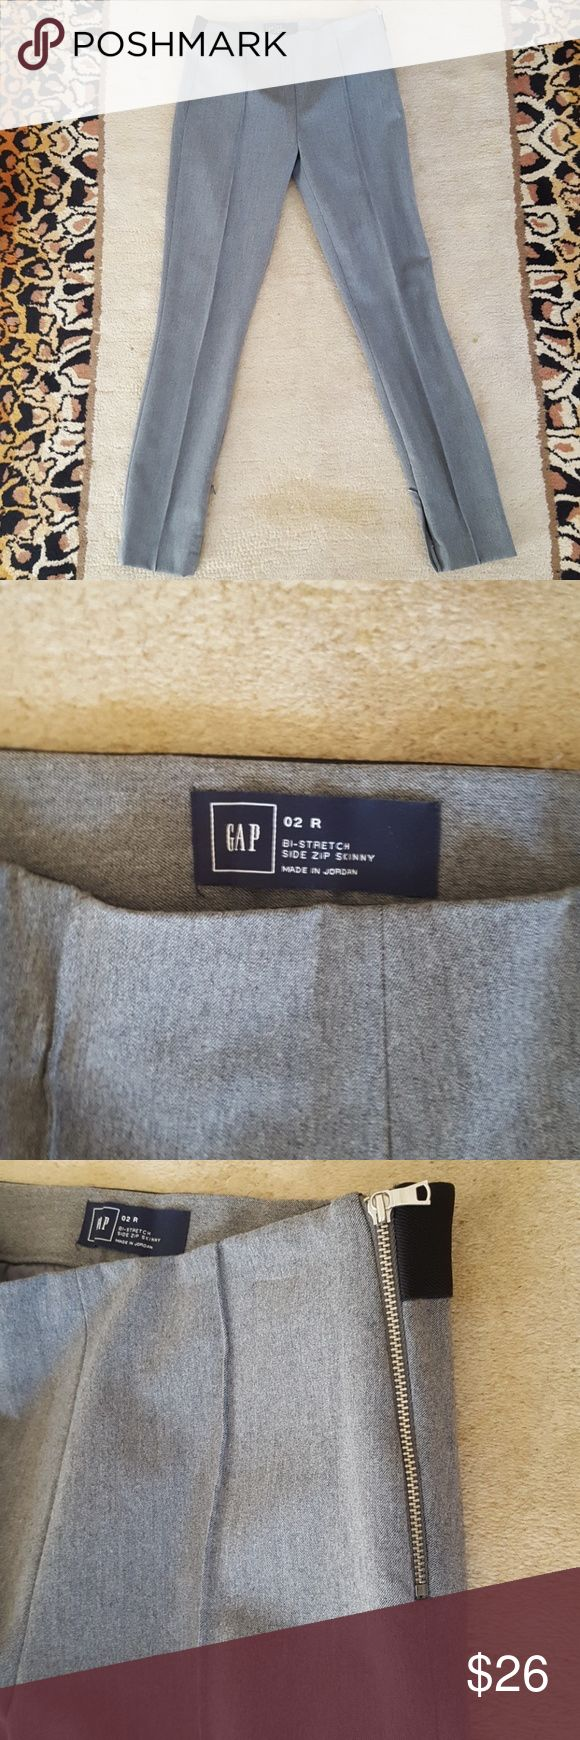 Gap Bi-stretch side zip skinny Gap bi-stretch side zipper, inside button skinny work pants. Zippers on inner calves to make bottoms skinny or slight flare. Stretchy back waist band. GAP Pants